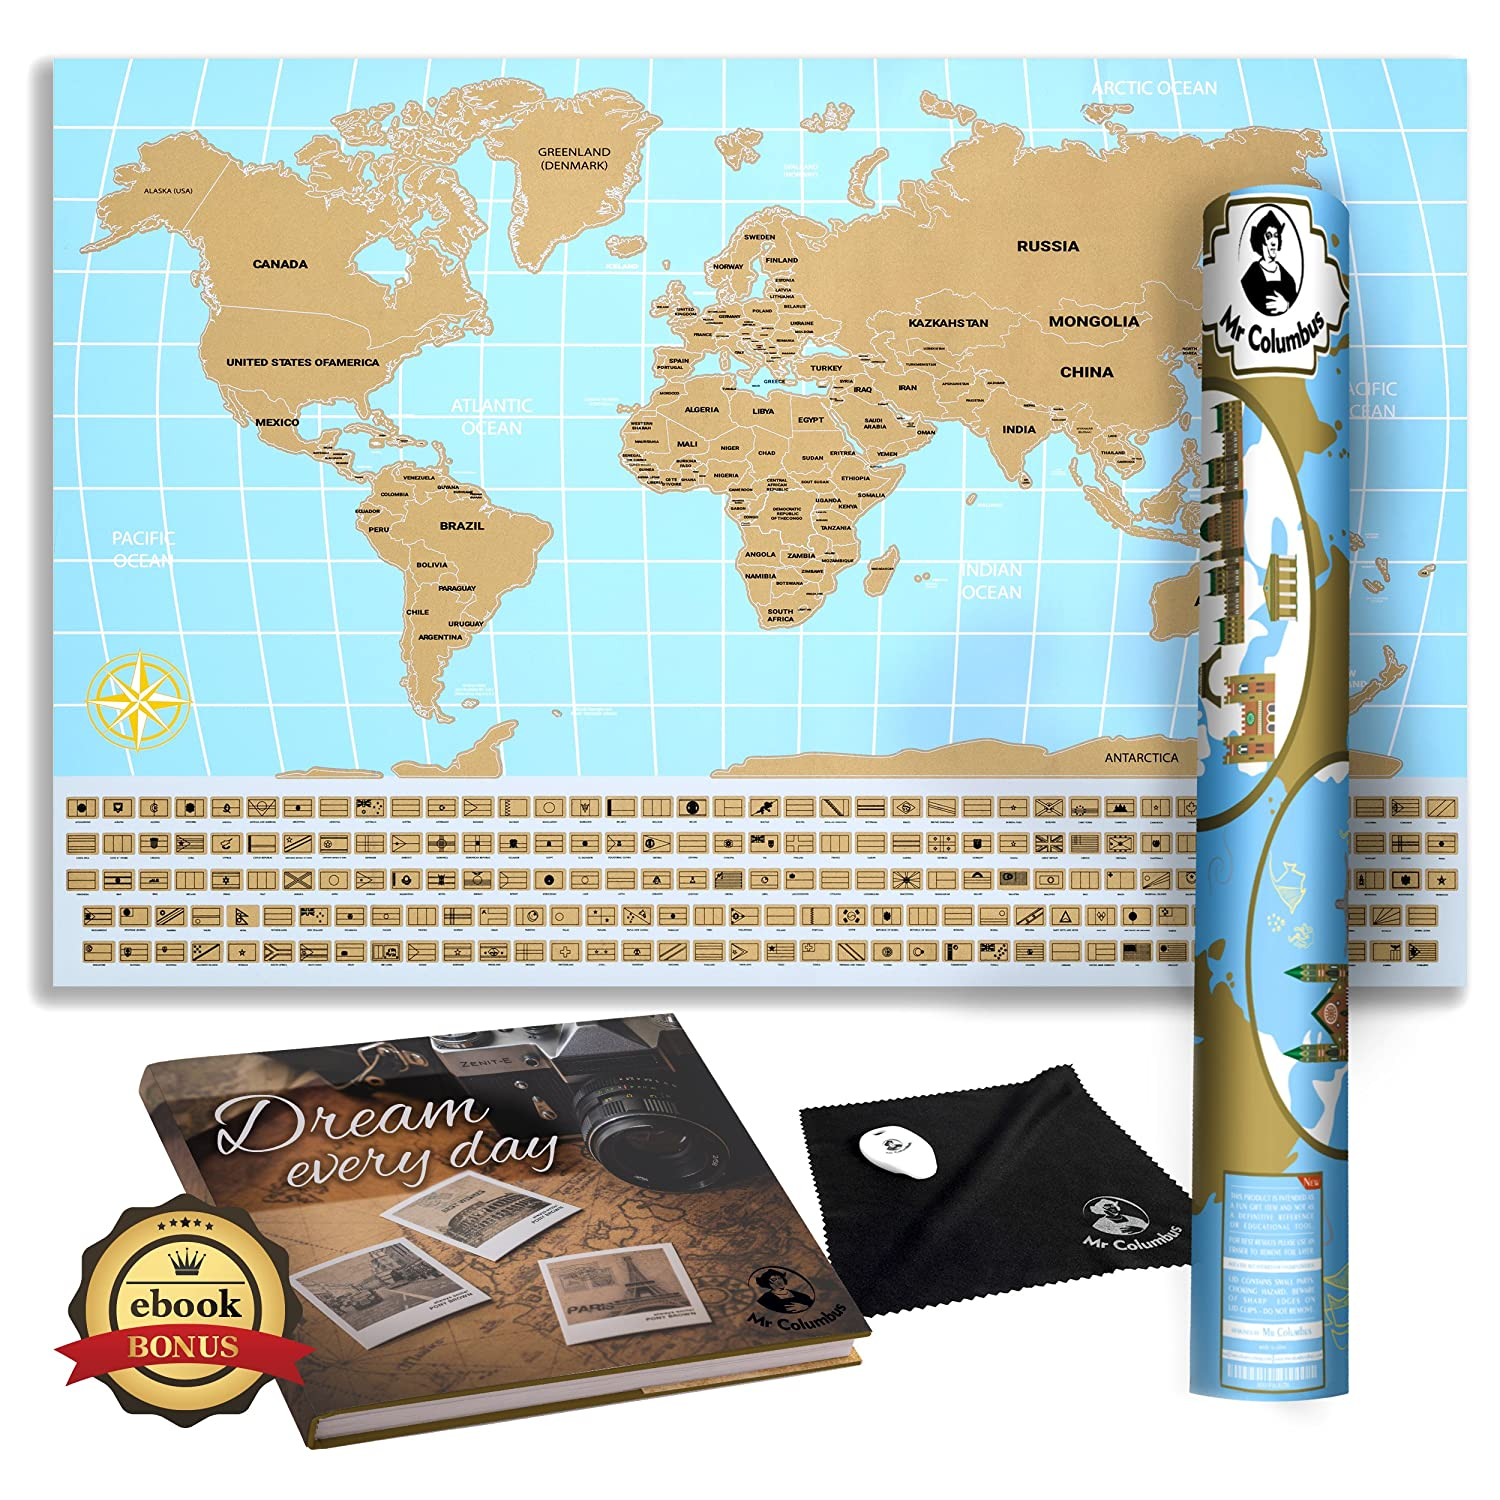 Scratch Off World Map Poster.Amazon Com Mr Columbus Scratch Off World Map Poster With Country